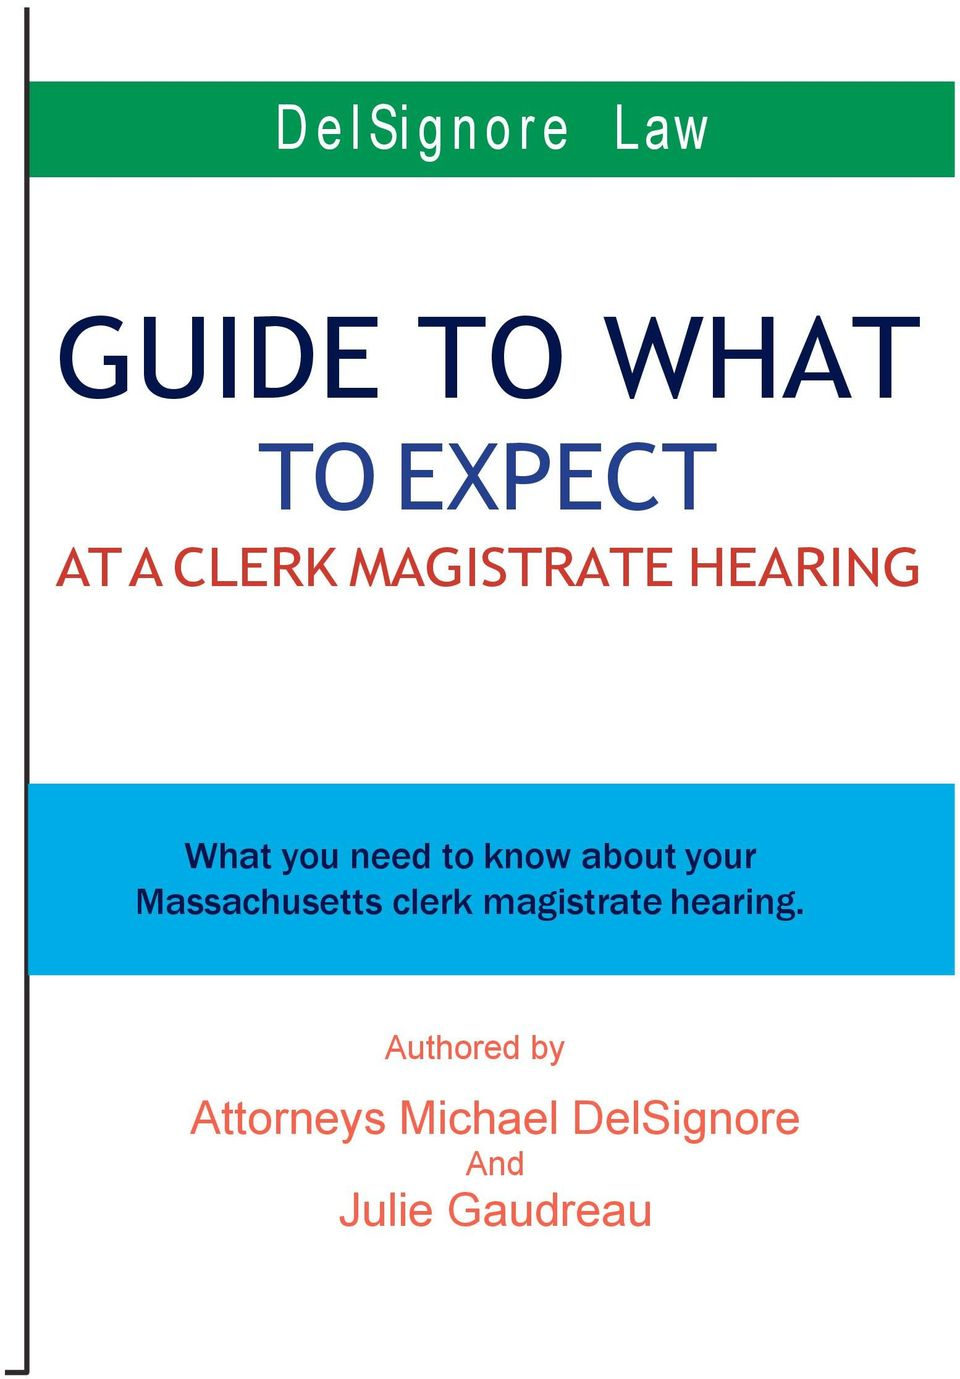 about your Massachusetts clerk magistrate hearing.